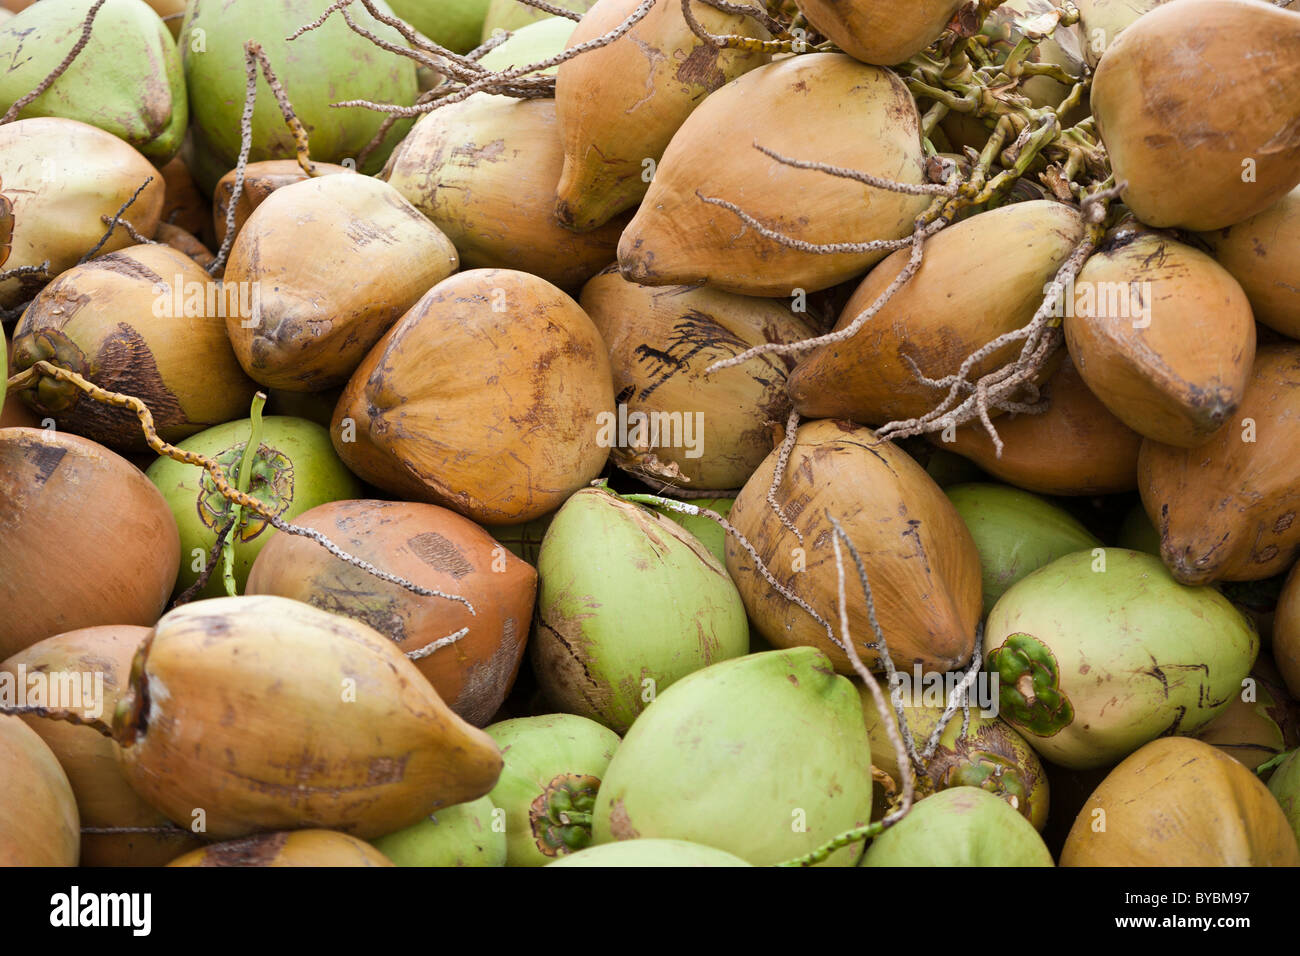 Coconuts Market Stock Photos & Coconuts Market Stock Images